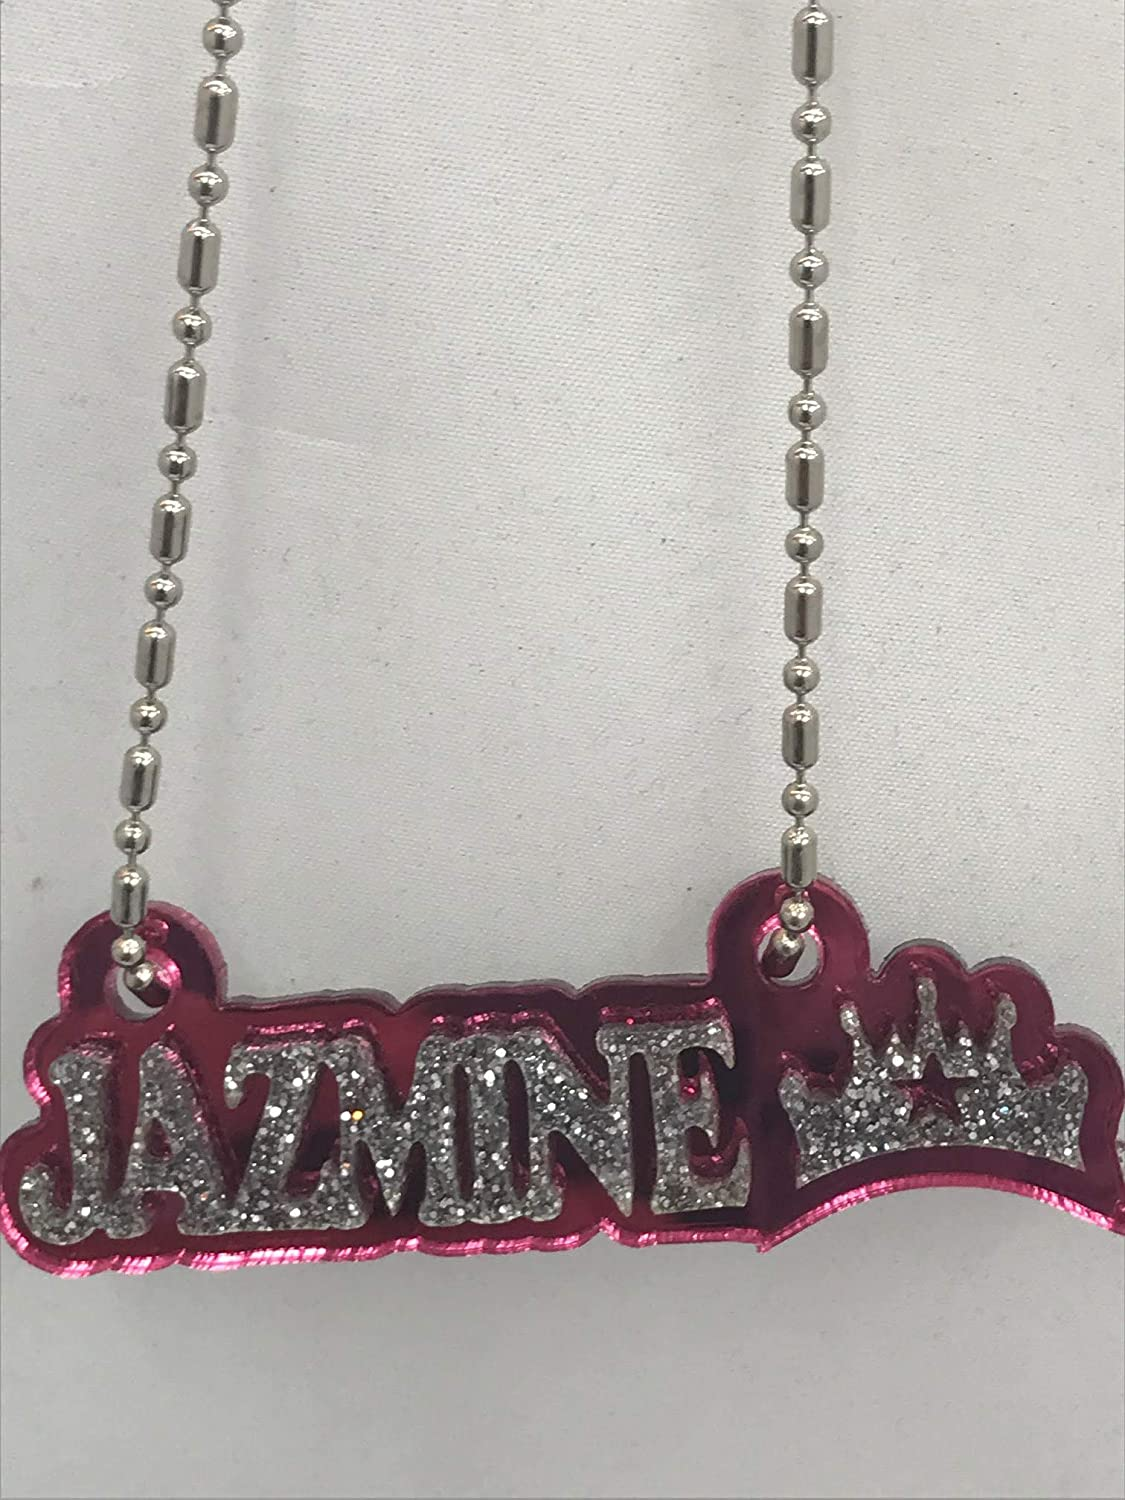 Made to Order Any Name Dazzling and Stunning! Diamond Look Mirror Mania Personalized Name Plate Custom Name Necklace Nameplate Name Laser Cut